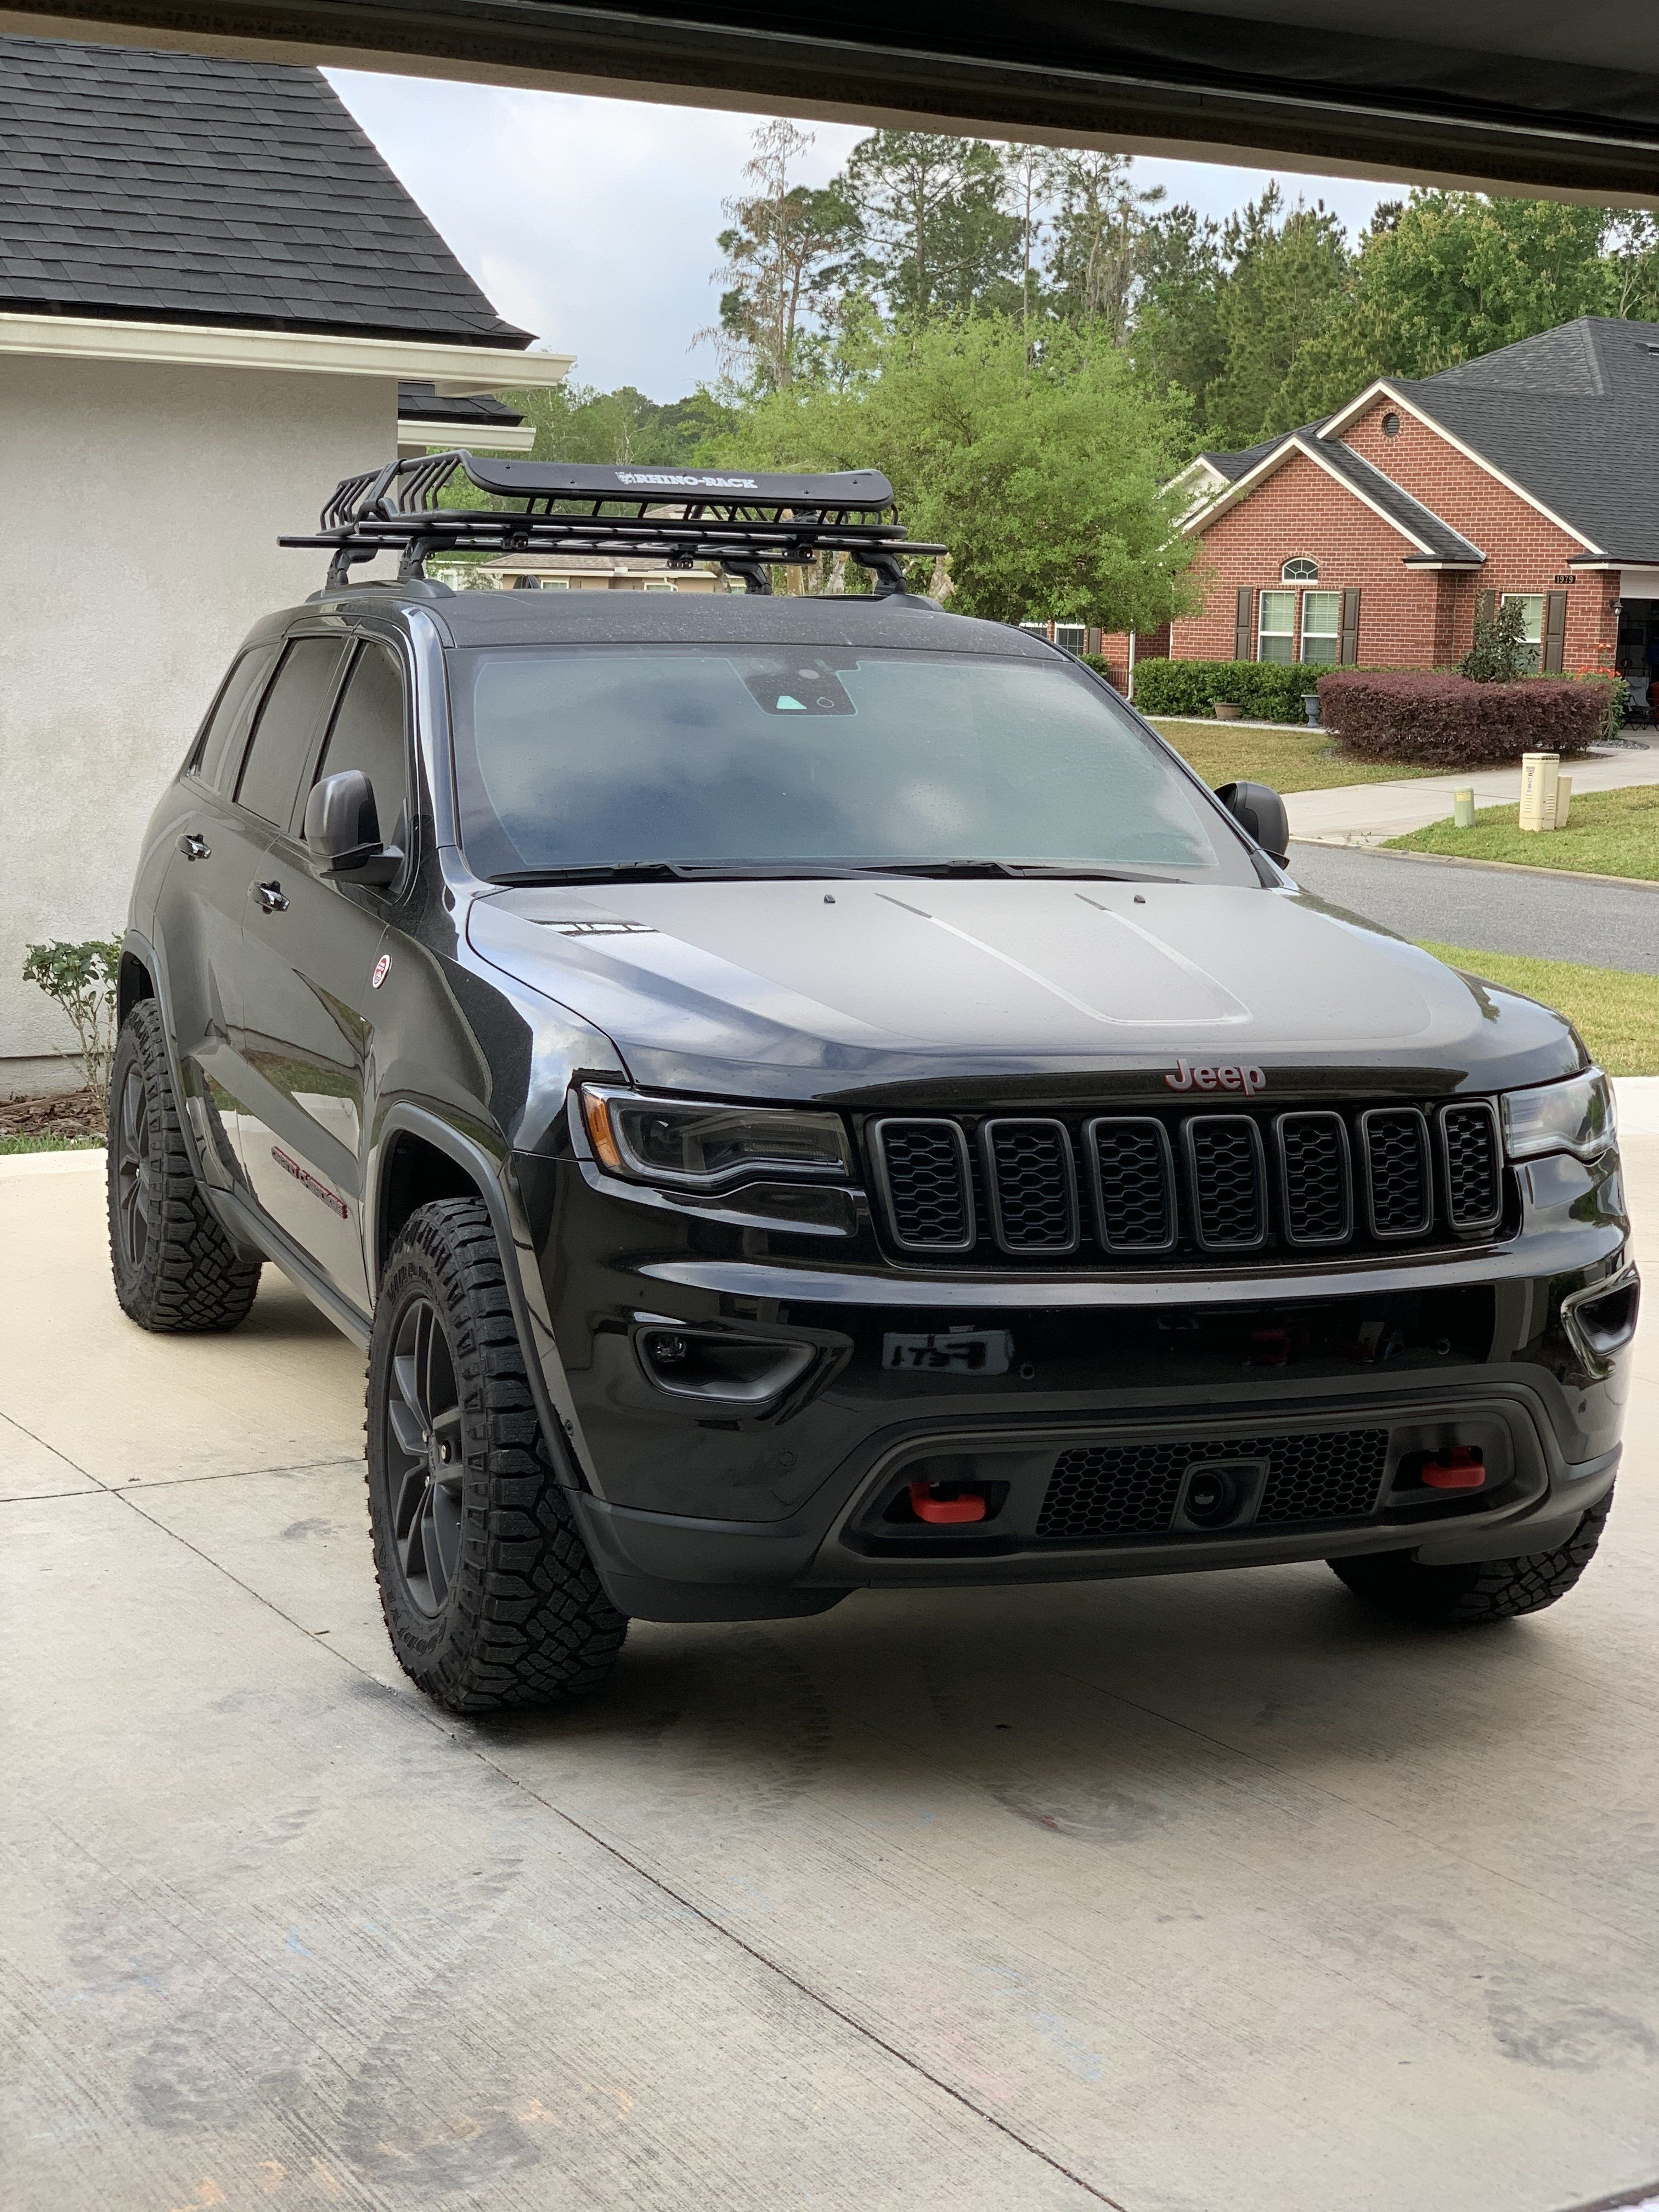 Jeep Wk2 Forum : forum, Halley, Trailhawk, Build, Garage, Forum, Lifted, Jeeps, Lifted-jeeps, Coches, Deportivos, Lujo,, Vehículos, Todoterreno,, Chulos